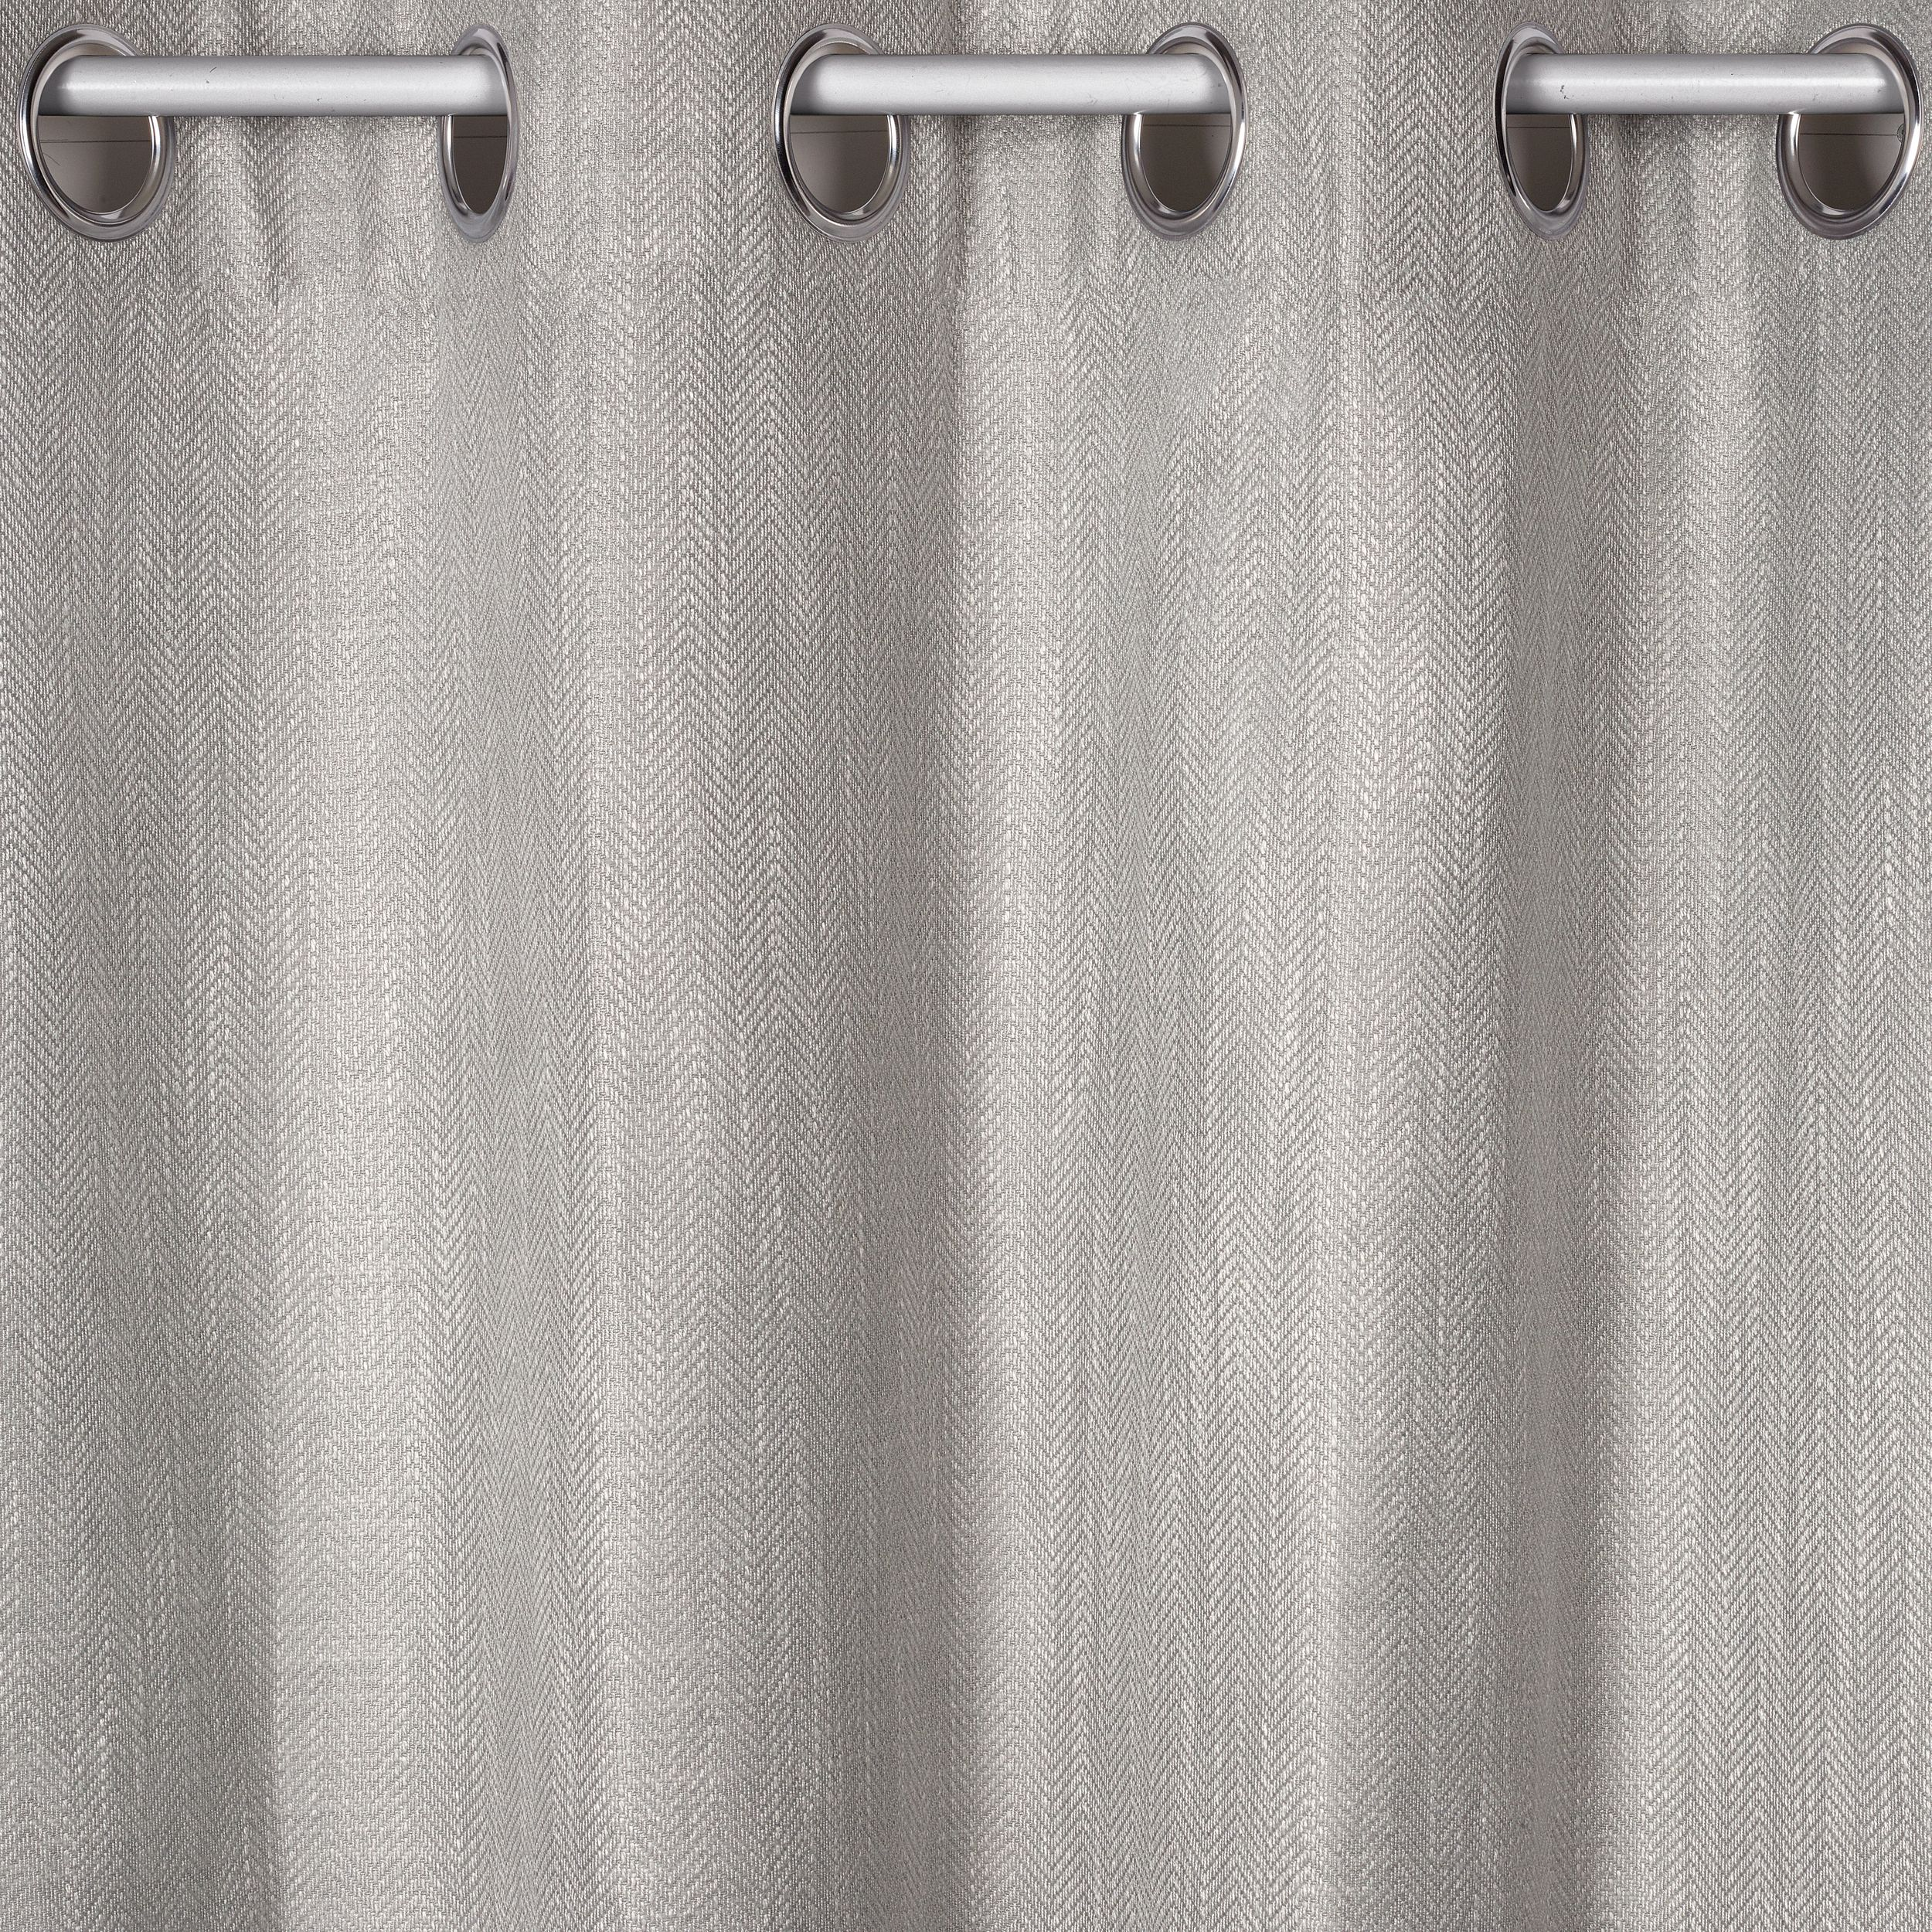 in and fuchsia plain express ring top thermal curtains ready linen lined slx product by self eyelet slate made daytona denim sterling earth blackout styleline gray